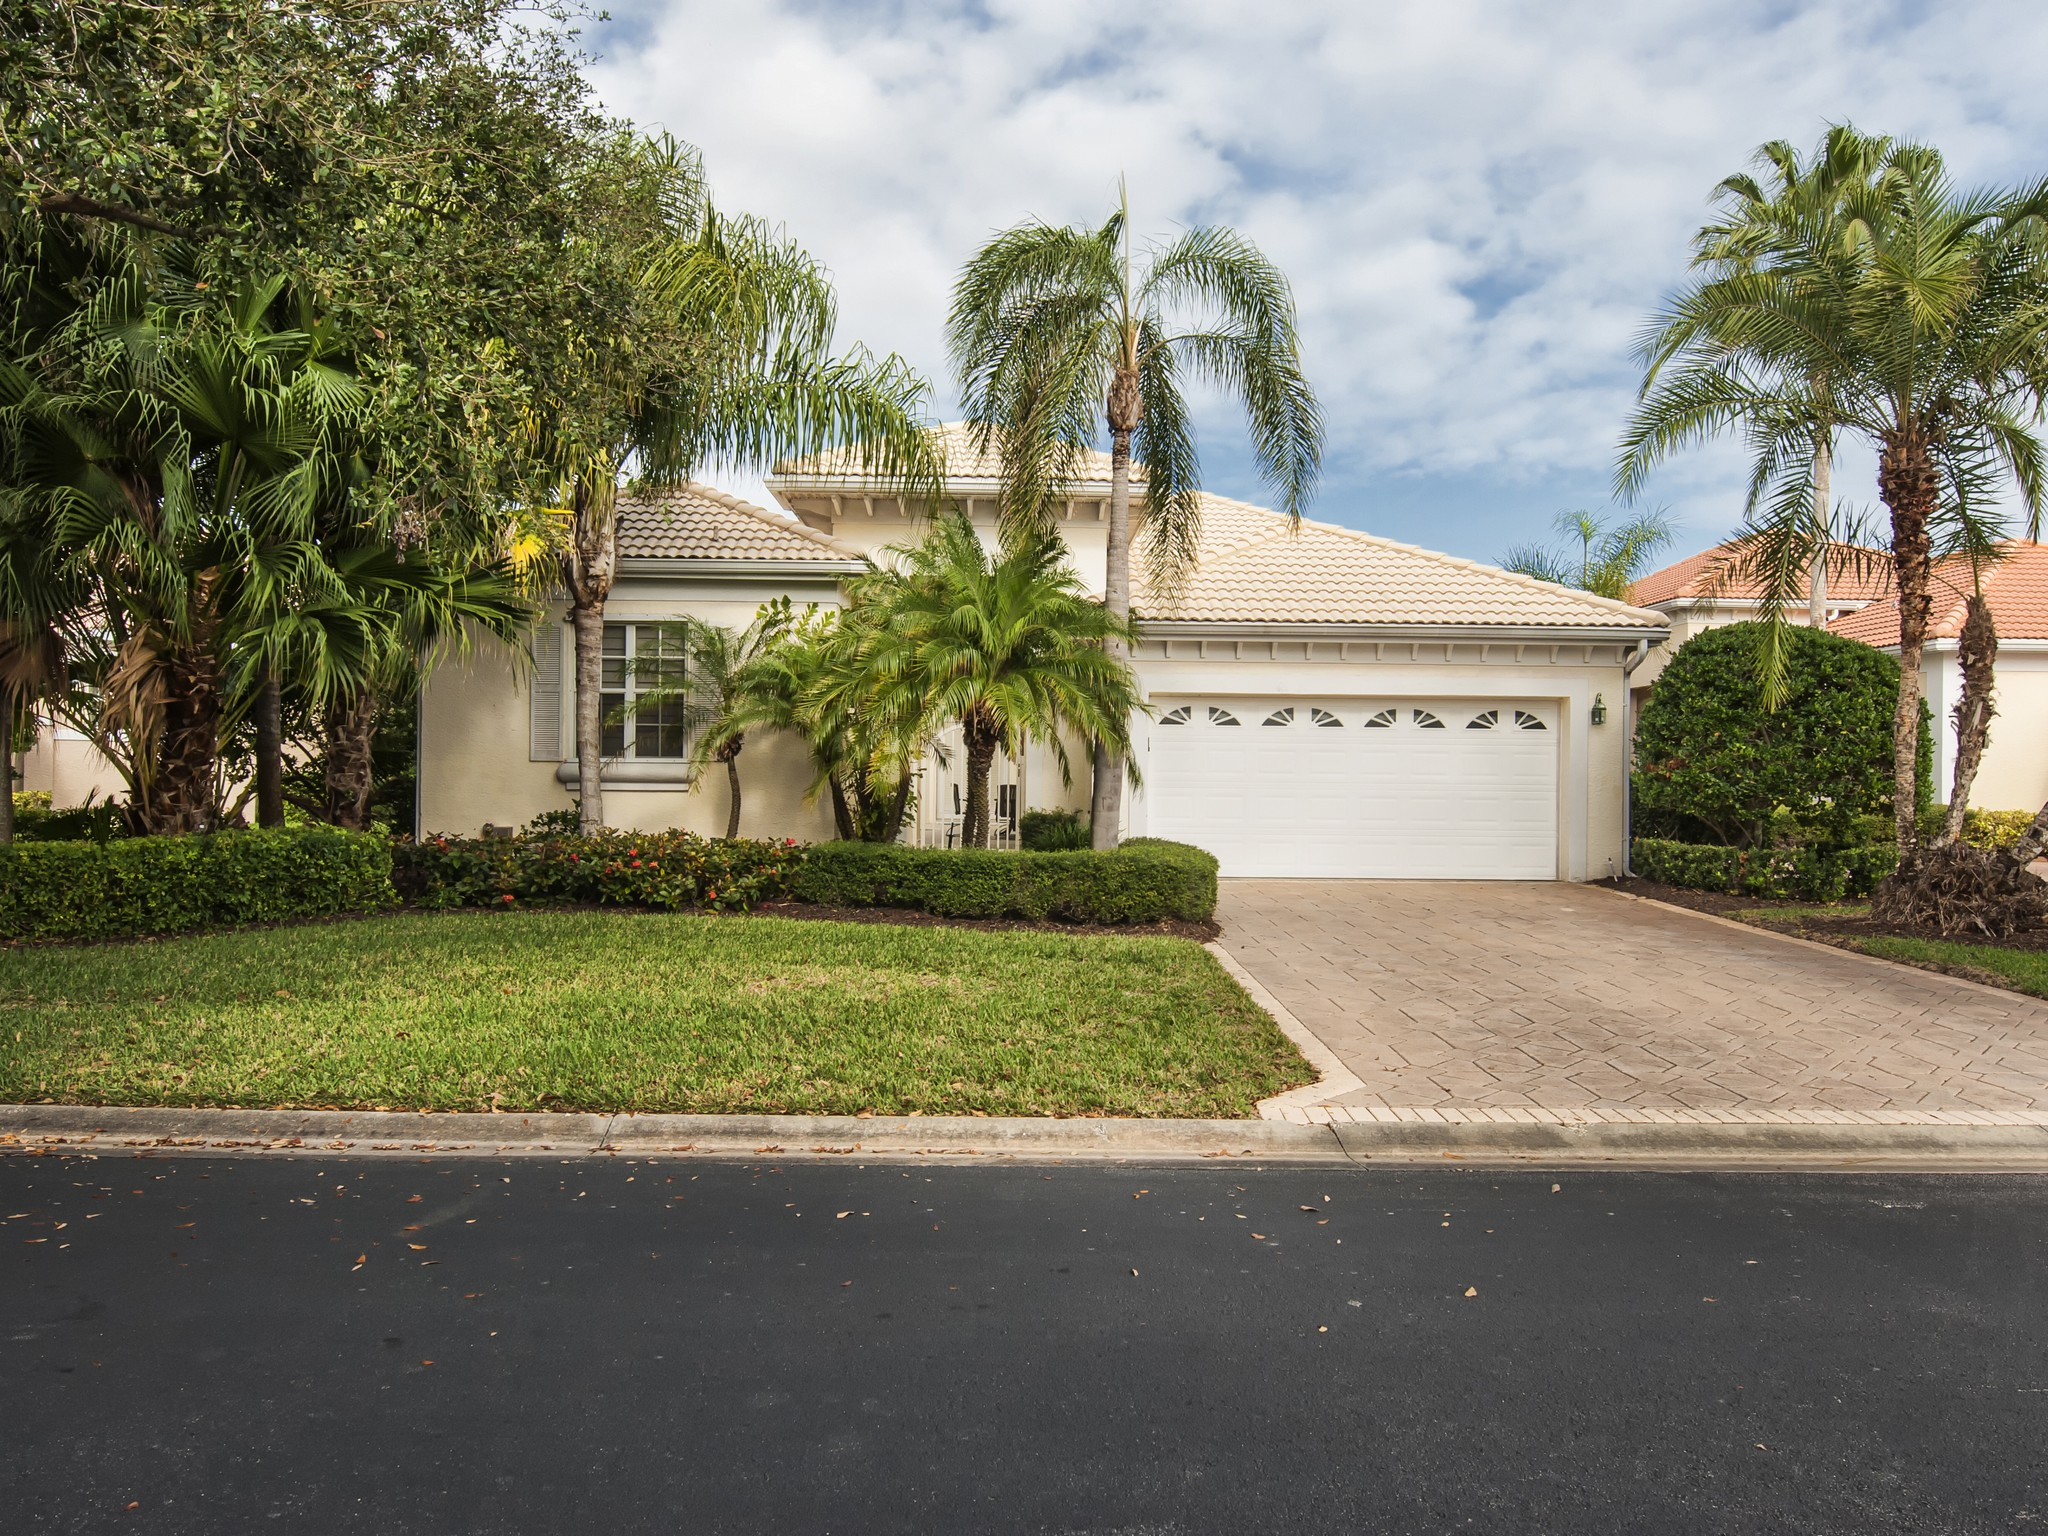 Property For Sale at Island Club of Vero Beach